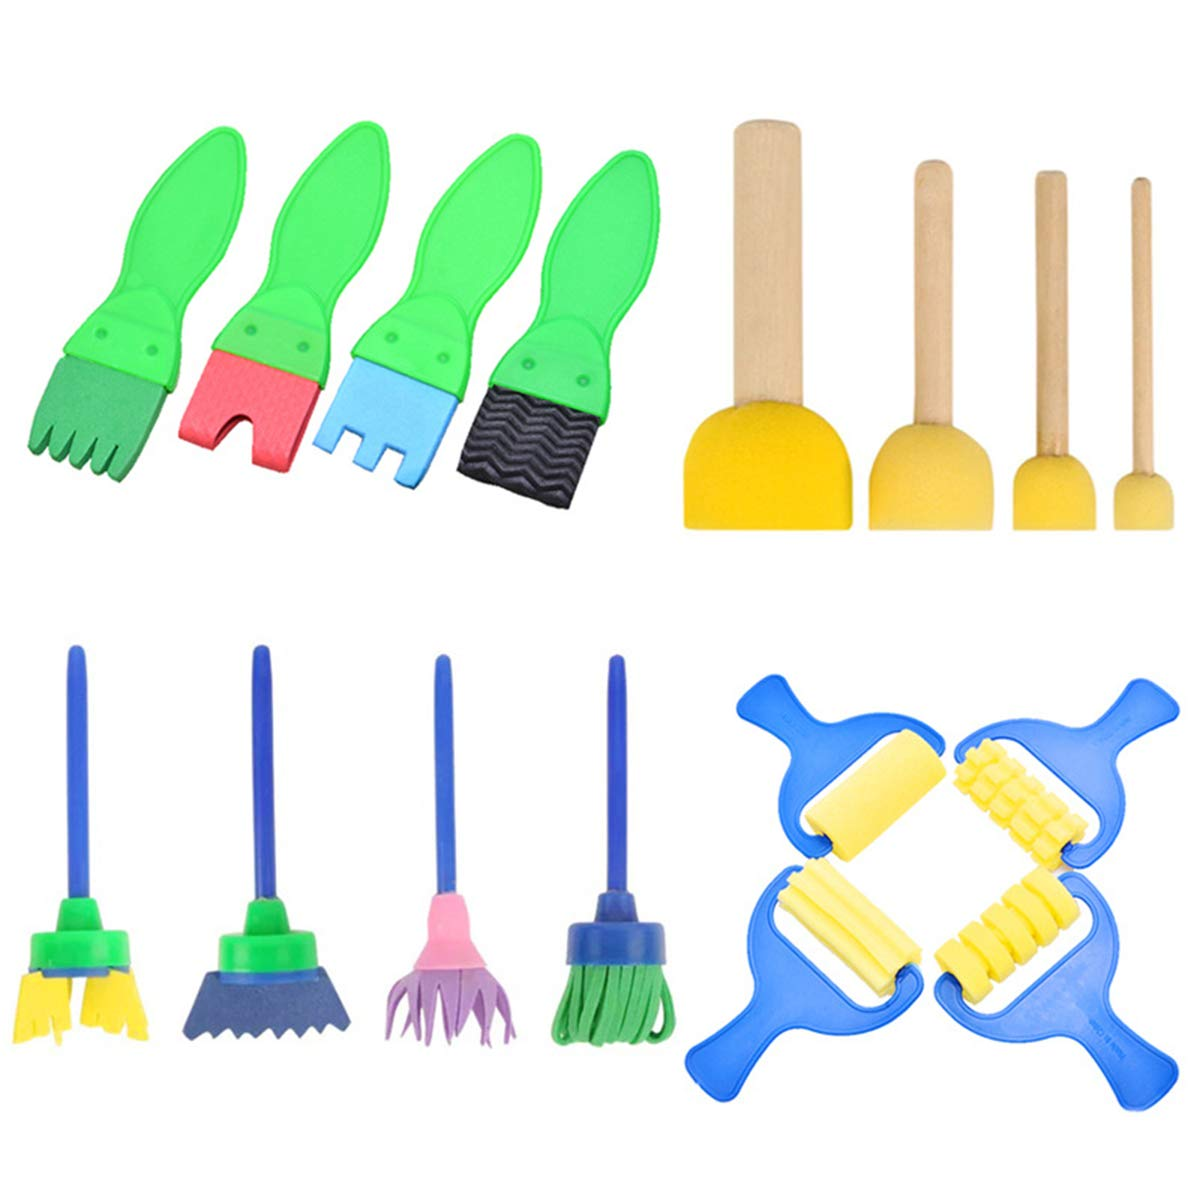 13 Kids Drawing Tools Set Beautifultracy 48 Pcs Painting Kits Kids Sponge Painting Brushes Kits for Kids DIY Early Learning Foam Brushes Include 1 Waterproof Apron 26 Letters 8 Pattern Brush